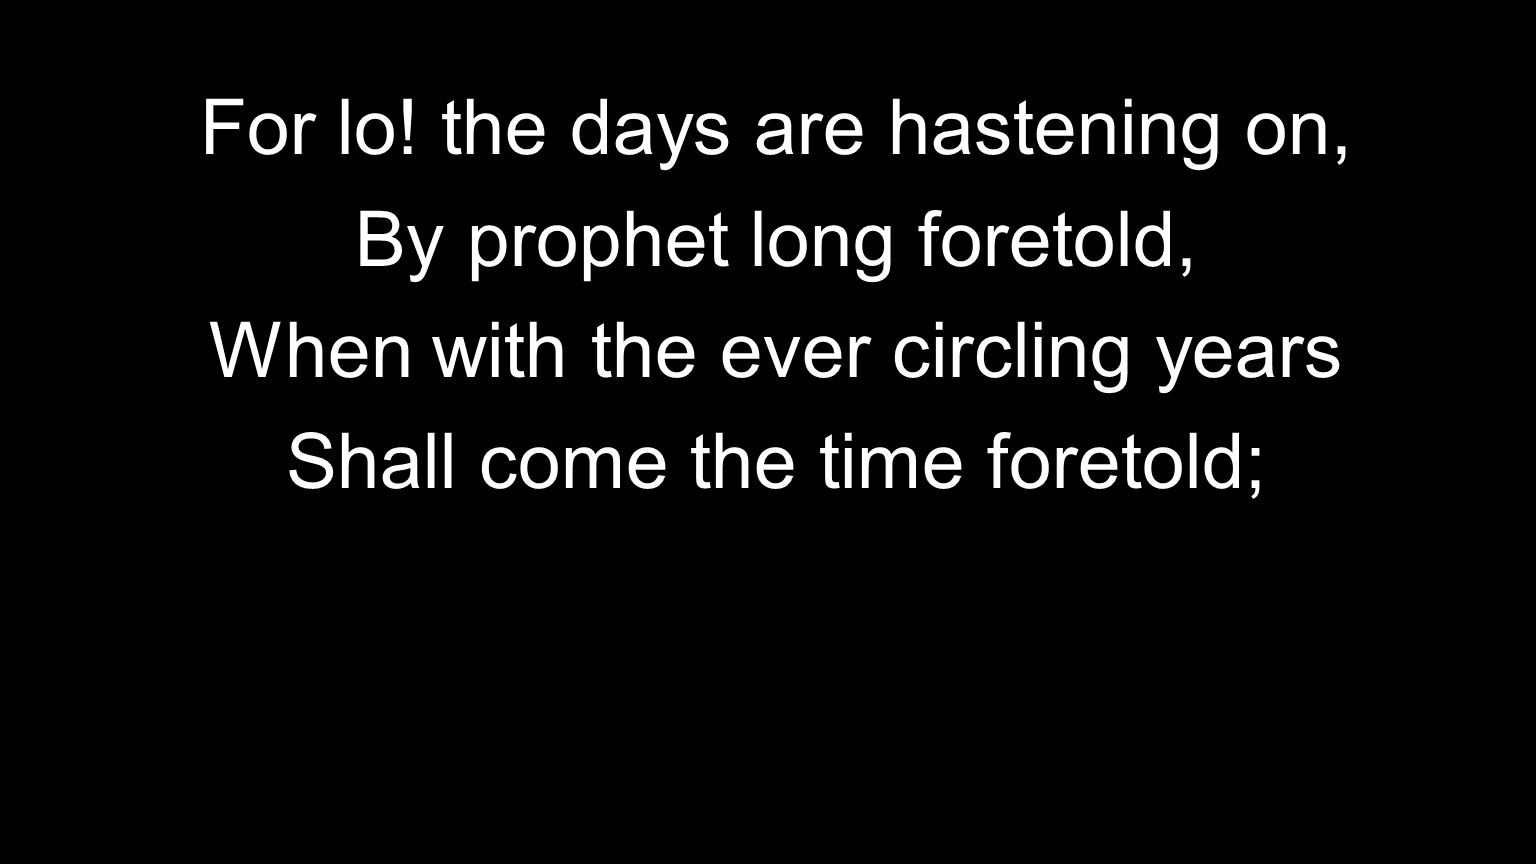 For lo! the days are hastening on, By prophet long foretold,